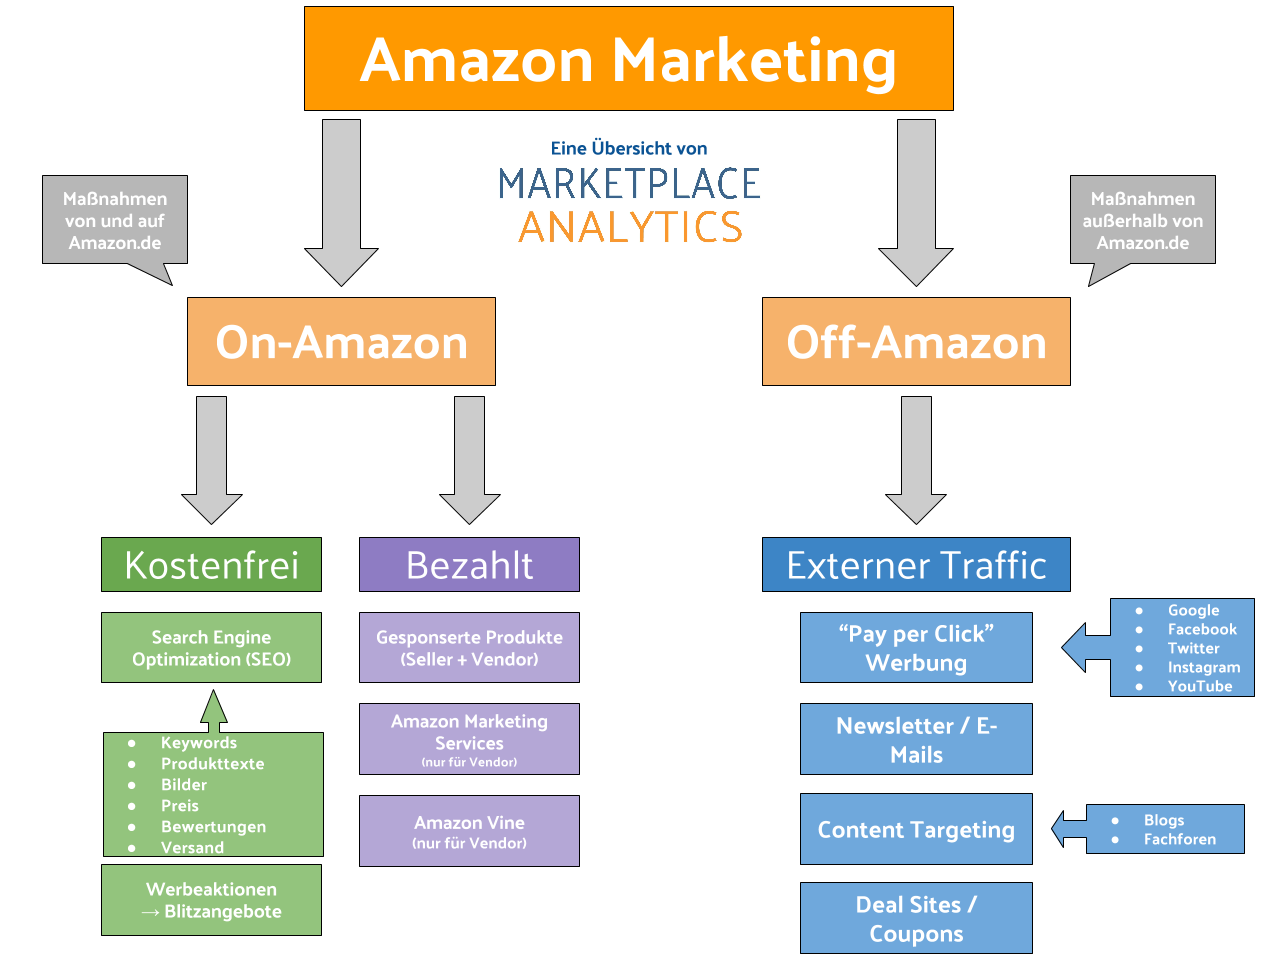 marketing plan for amazon com Swot analysis objectives/goals/strategy market penetration company overview what is amazoncom amazon is an international online shopping website that offers products worldwide ranging from books, musics and movies to furniture, beauty products, clothing and food.